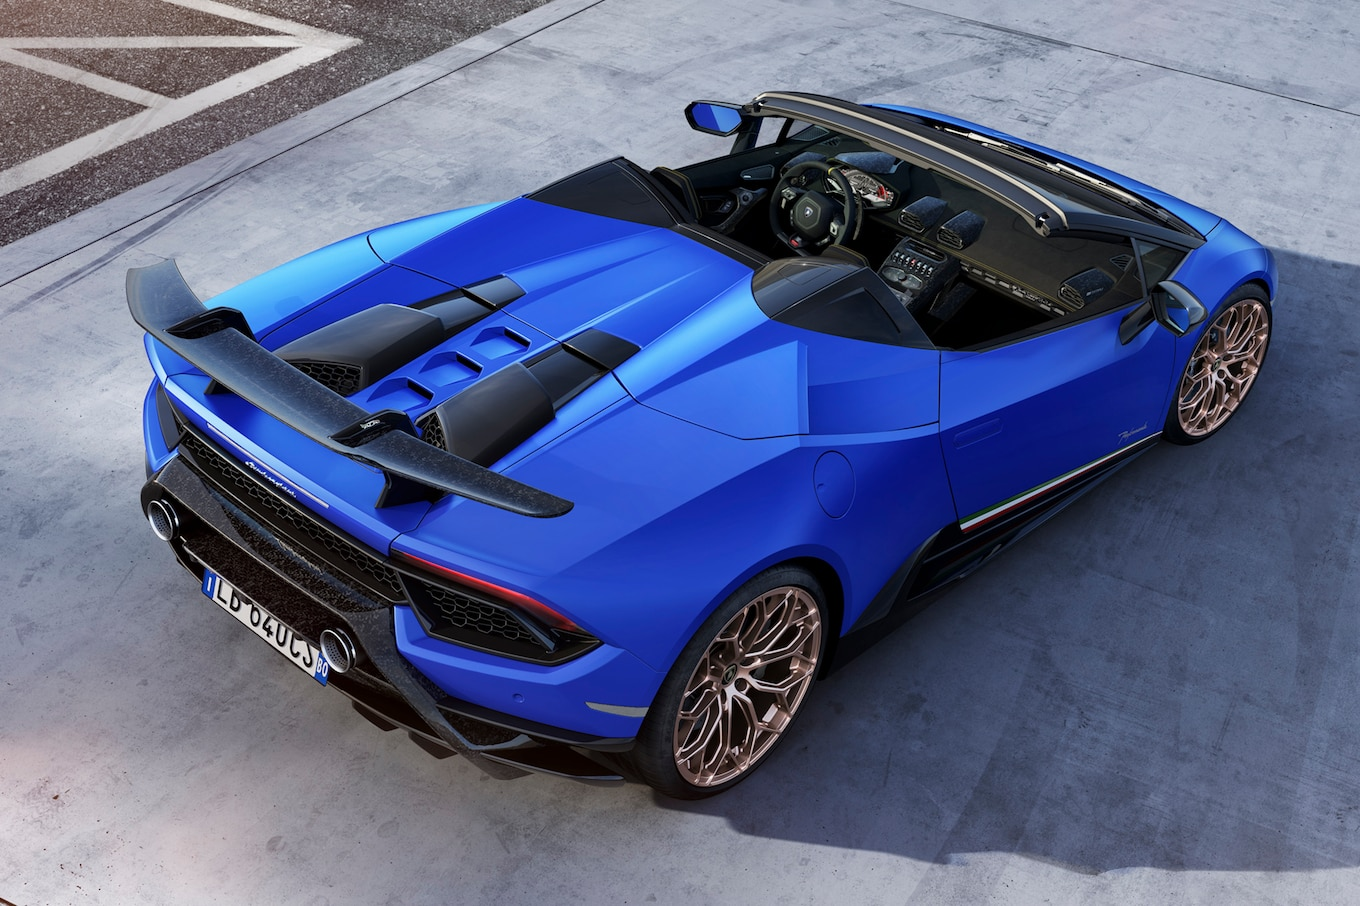 Floor It, And Lamborghini Says The All Wheel Drive Supercar Will Hit 62 Mph  In 3.1 Seconds. At 9.3 Seconds, Lambo Estimates You Should Be At 124 Mph,  ...